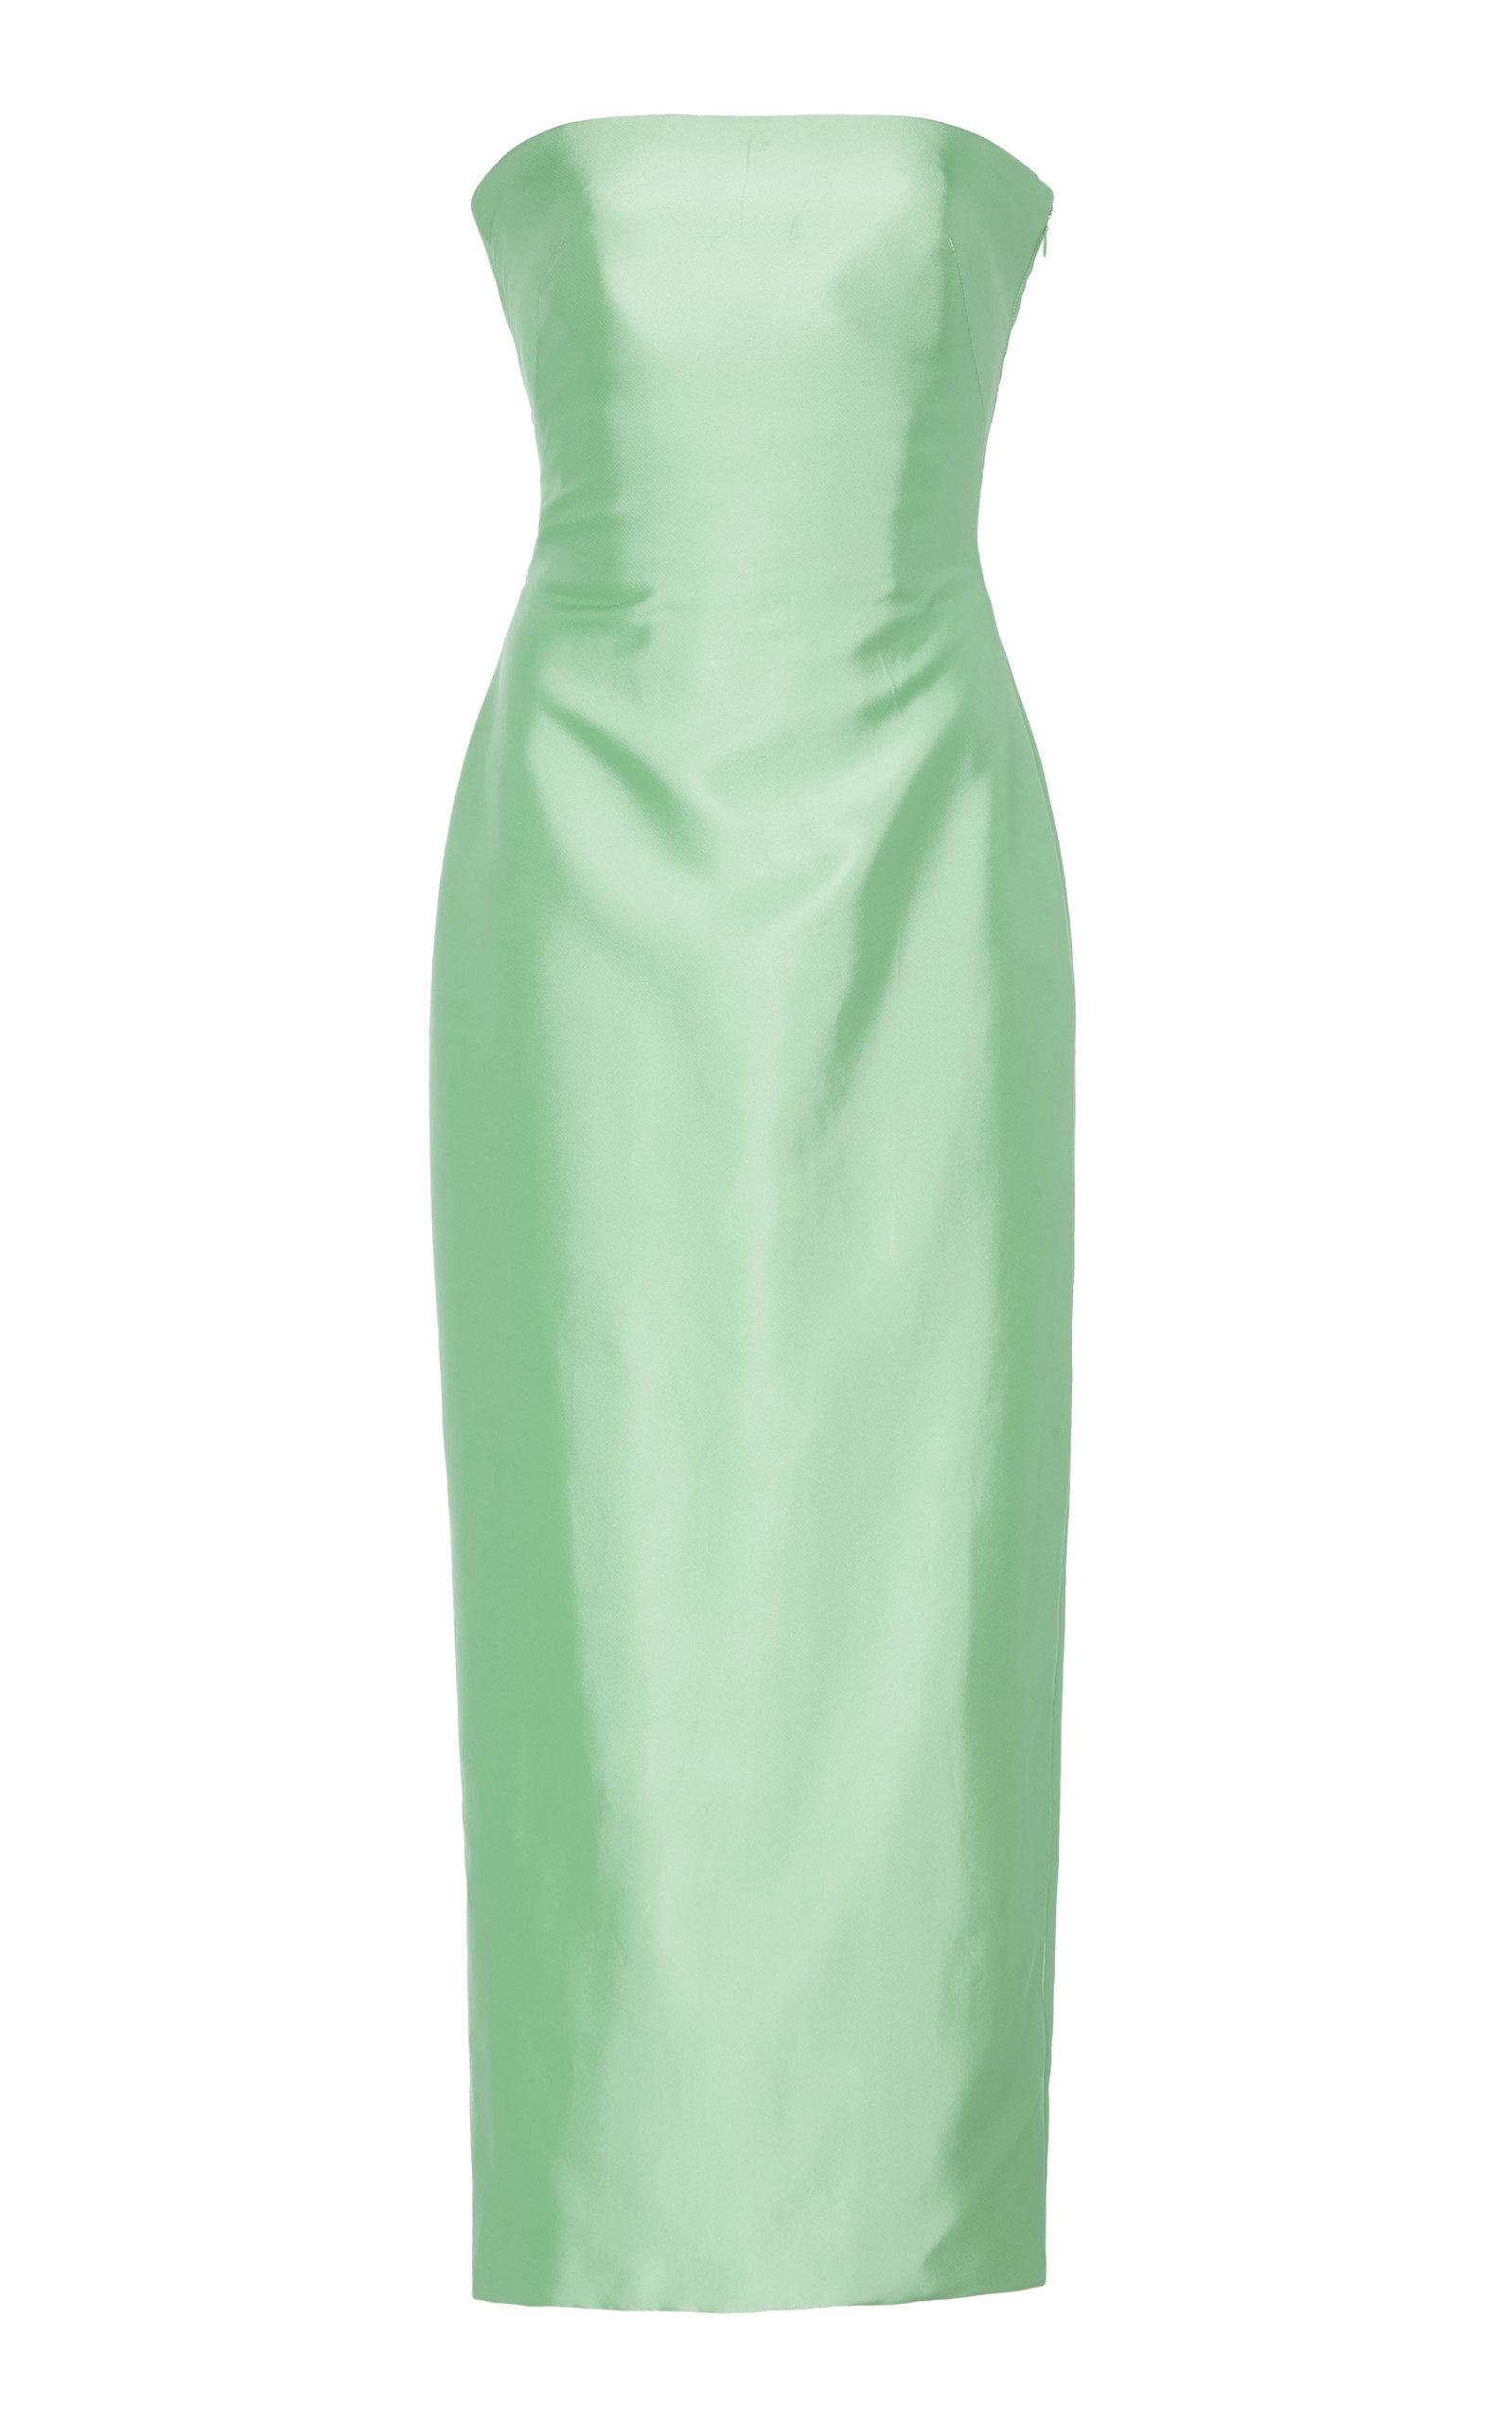 291bea53fbe Brandon Maxwell. Women s Green Strapless Knotted-back Satin Cocktail Dress.   2